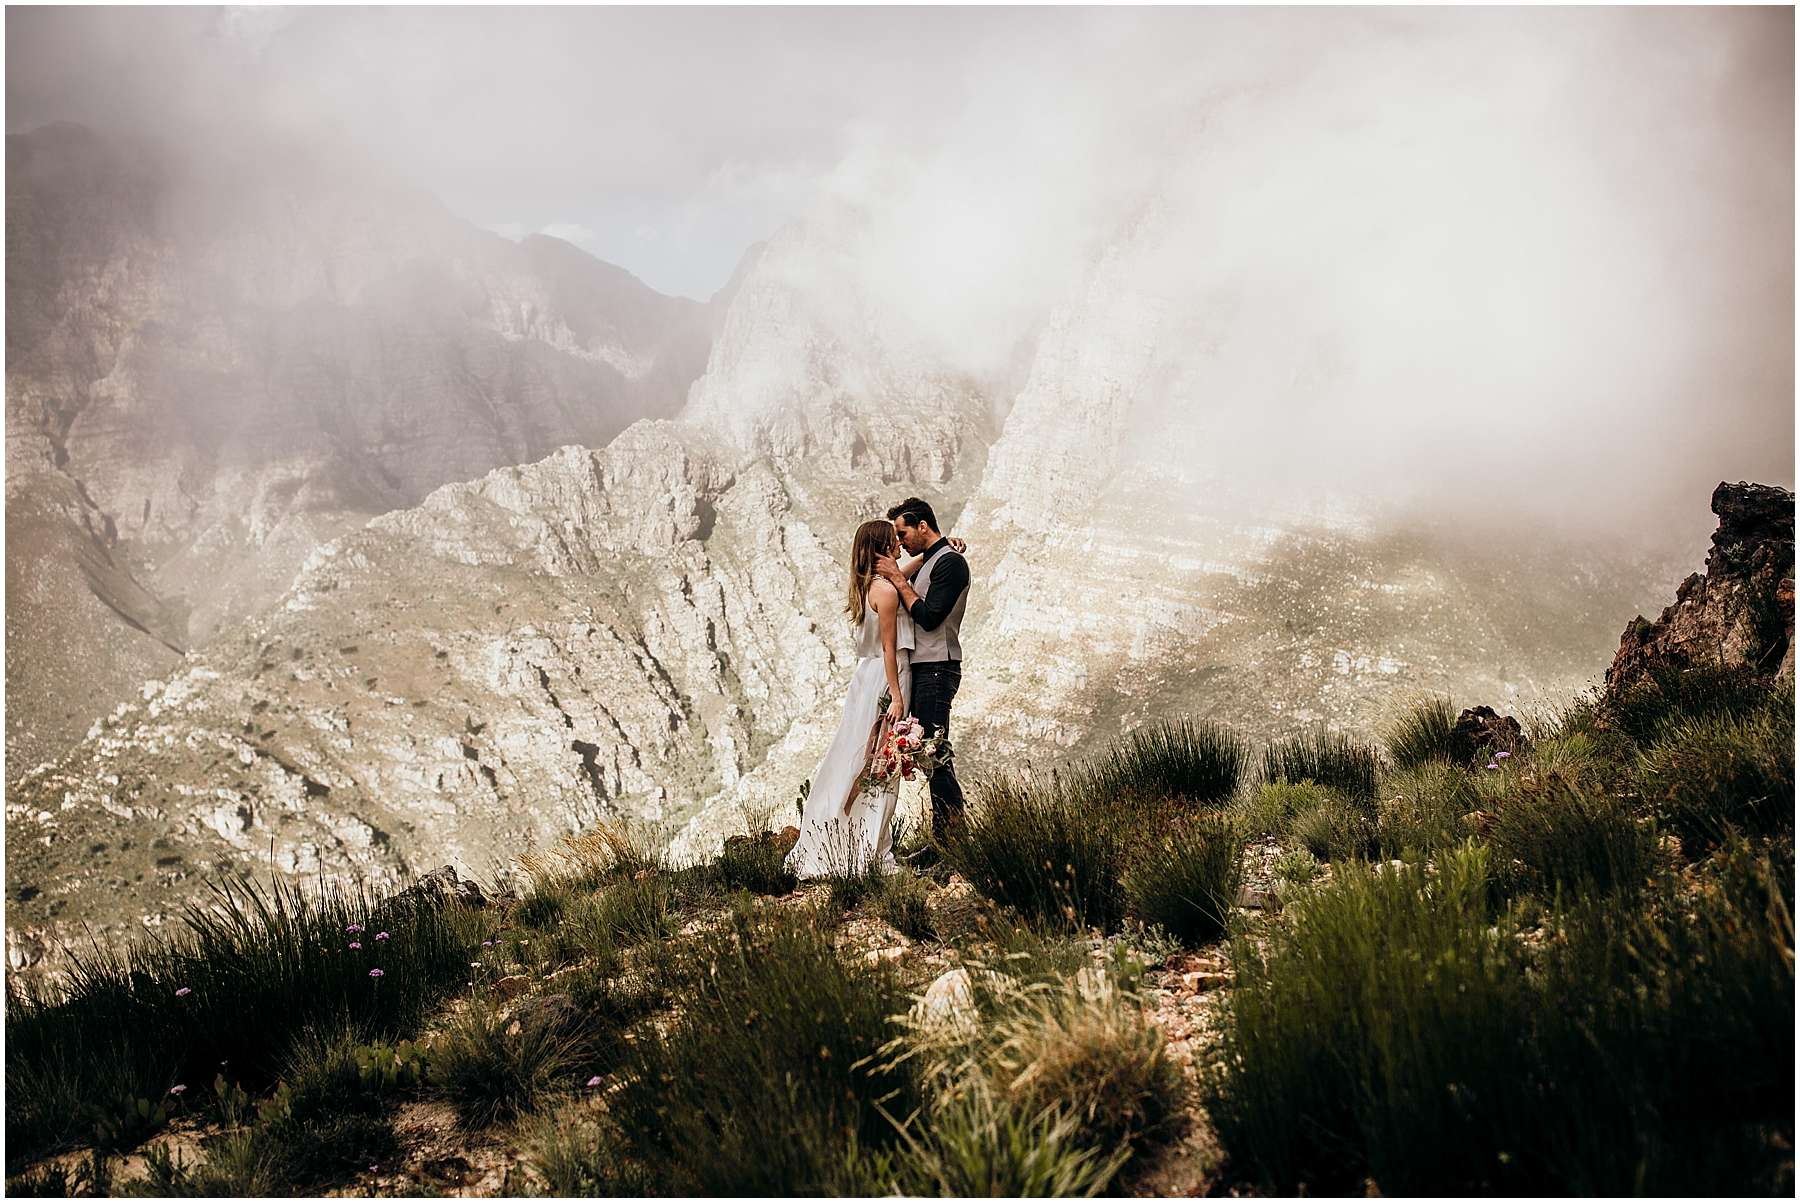 LOTTYH-South-Africa-Cape-Town-Elopement-Photographer_0007.jpg